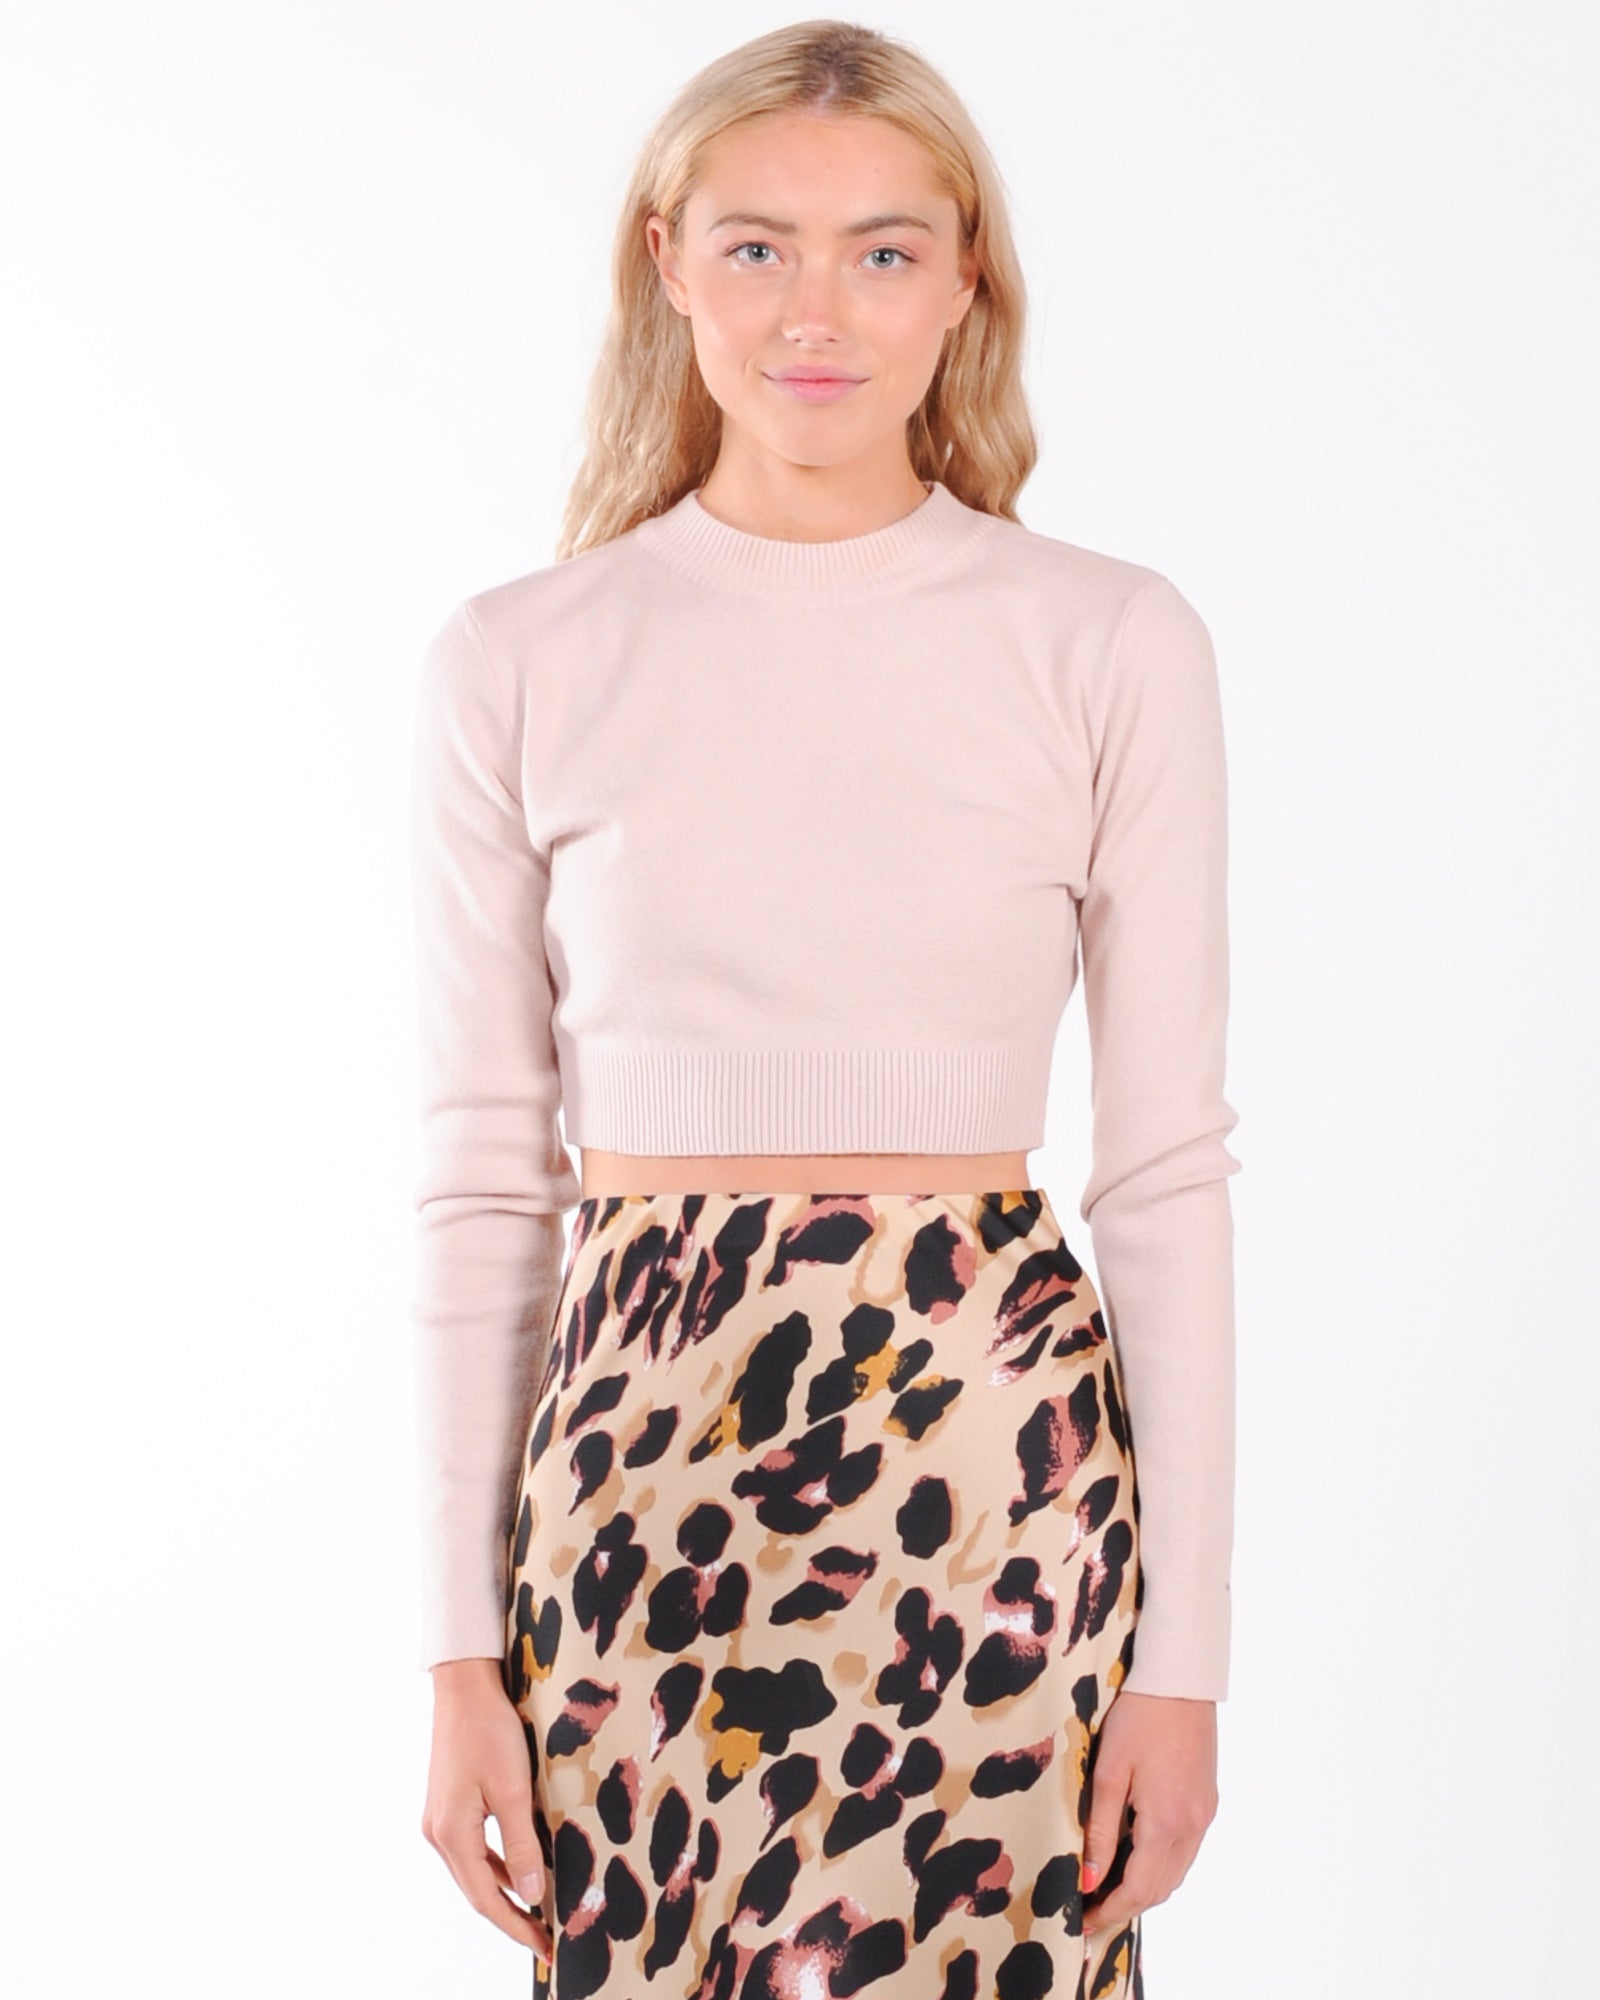 Lonely Heart Crop Knit Top - Blush